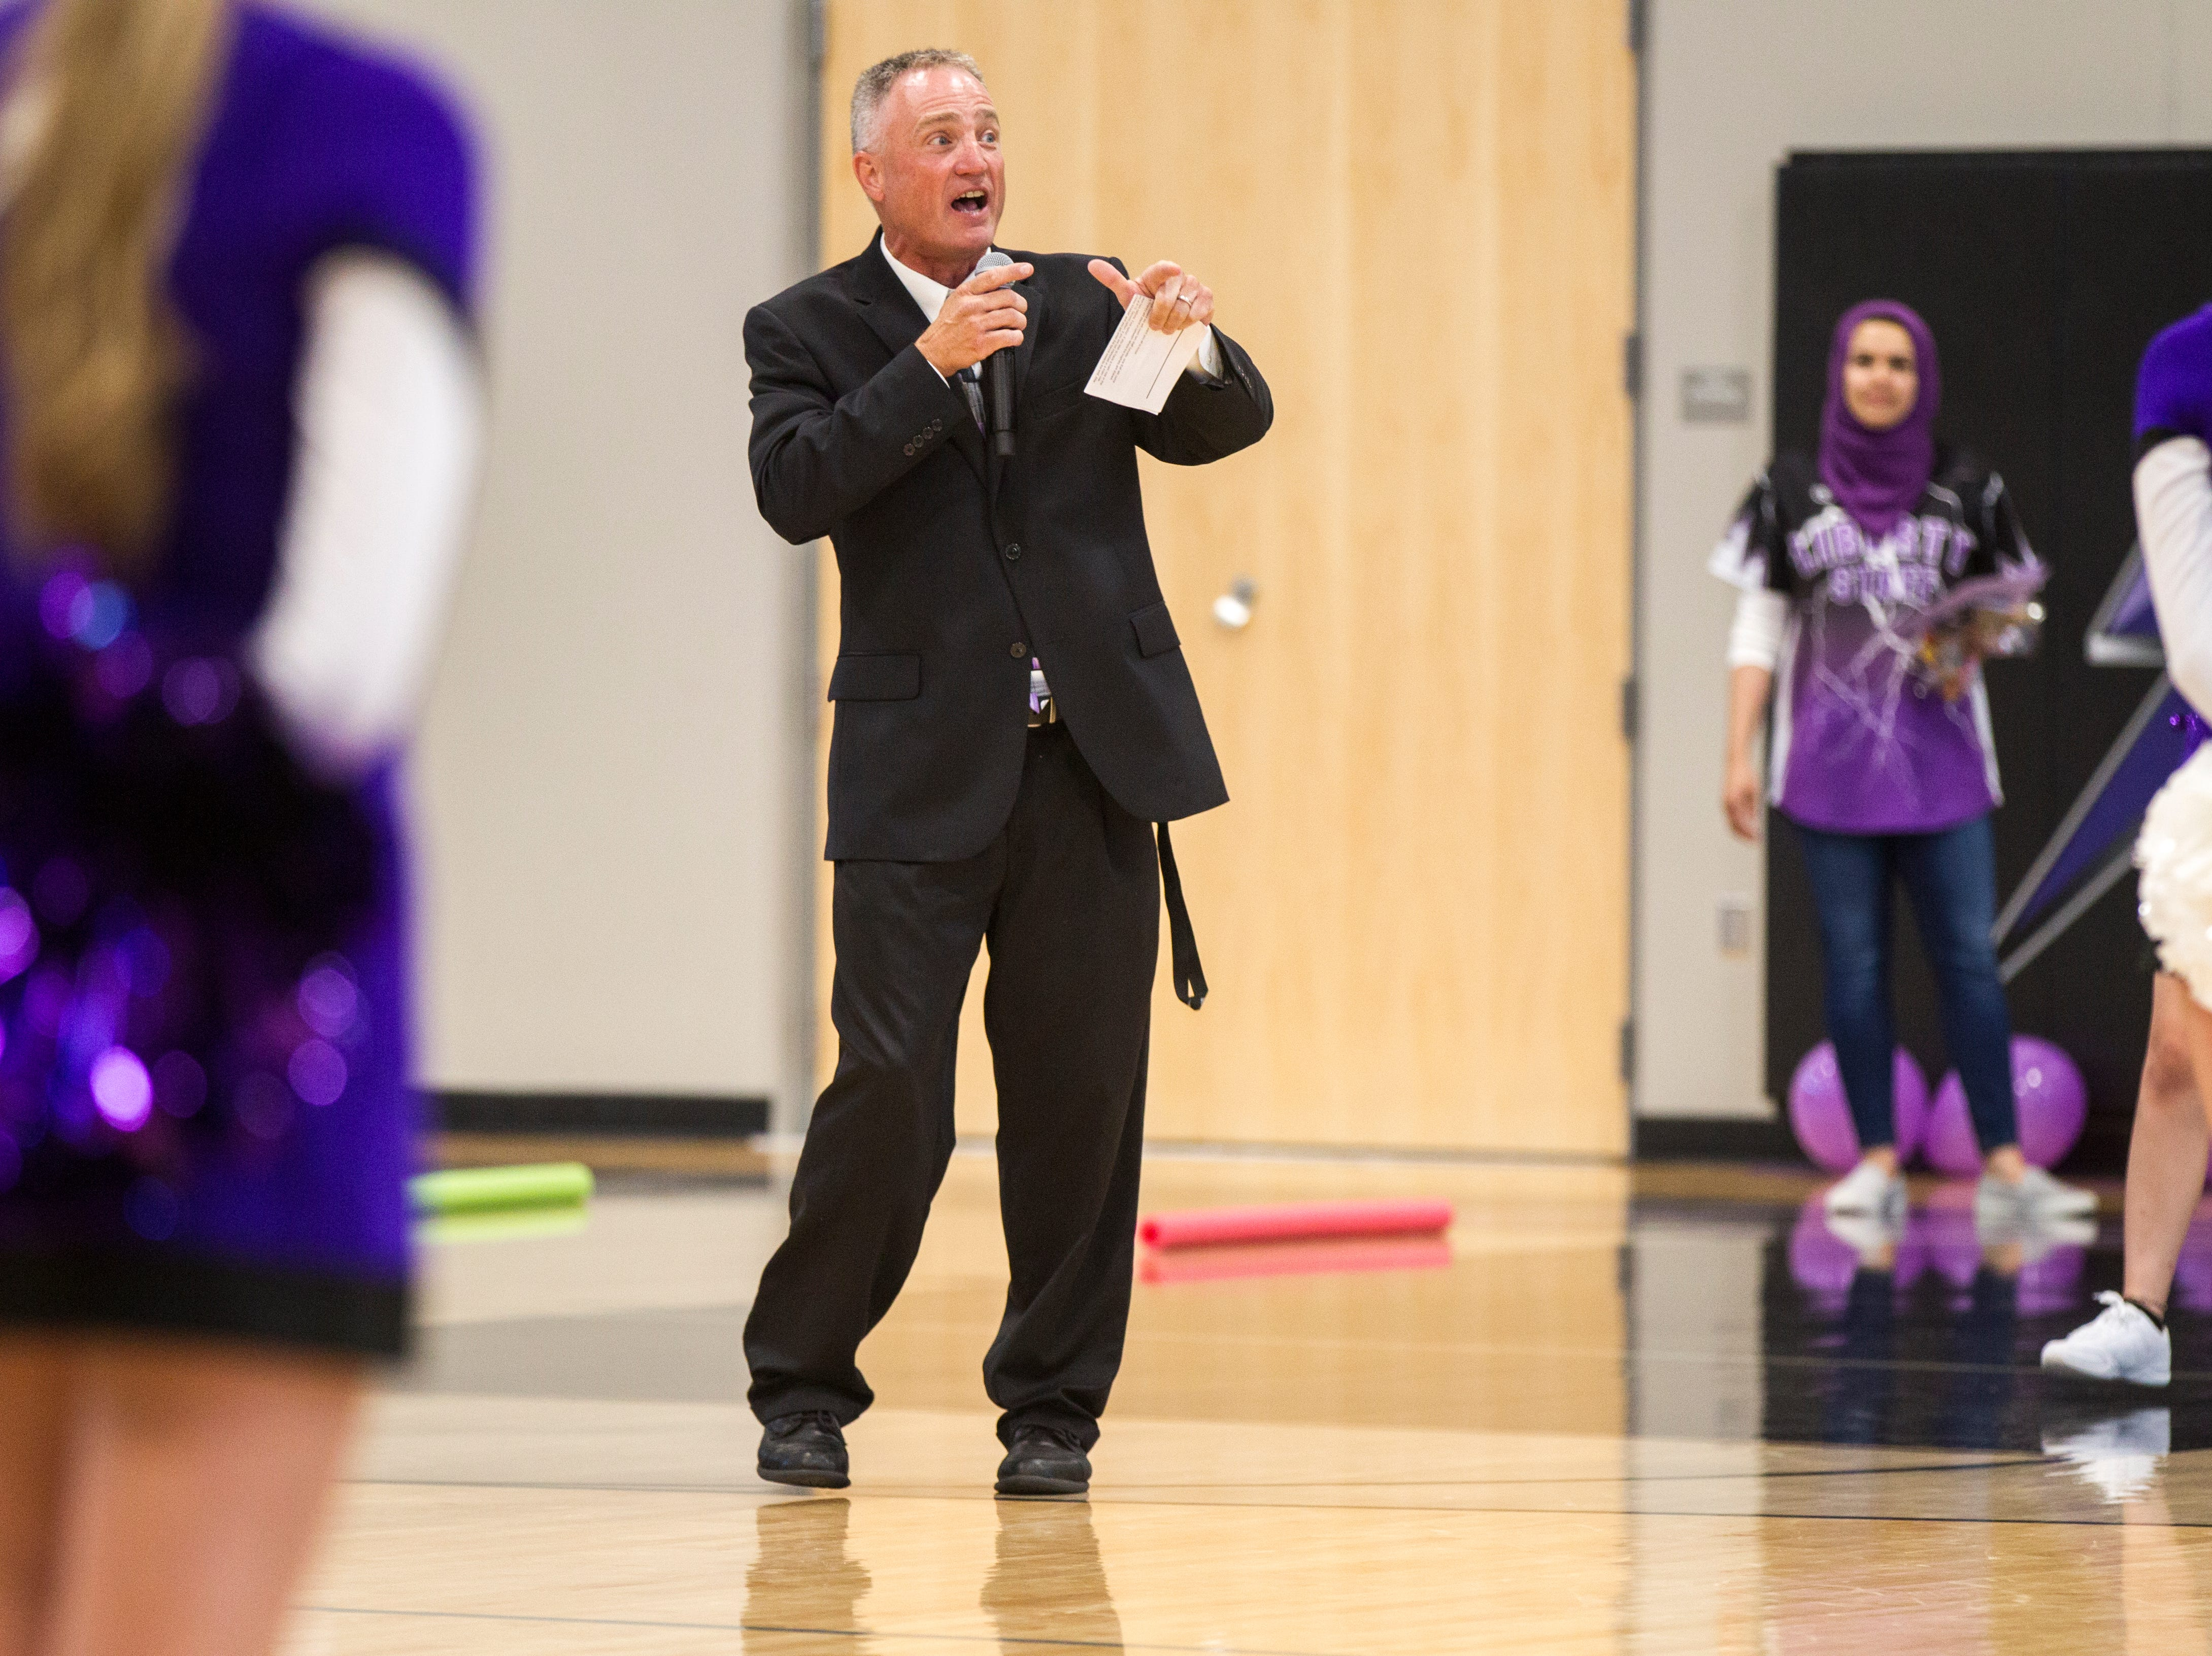 Scott Kibby, Liberty principal, speaks during a first day of school assembly on Thursday, Aug. 23, 2018, at Liberty High in North Liberty.